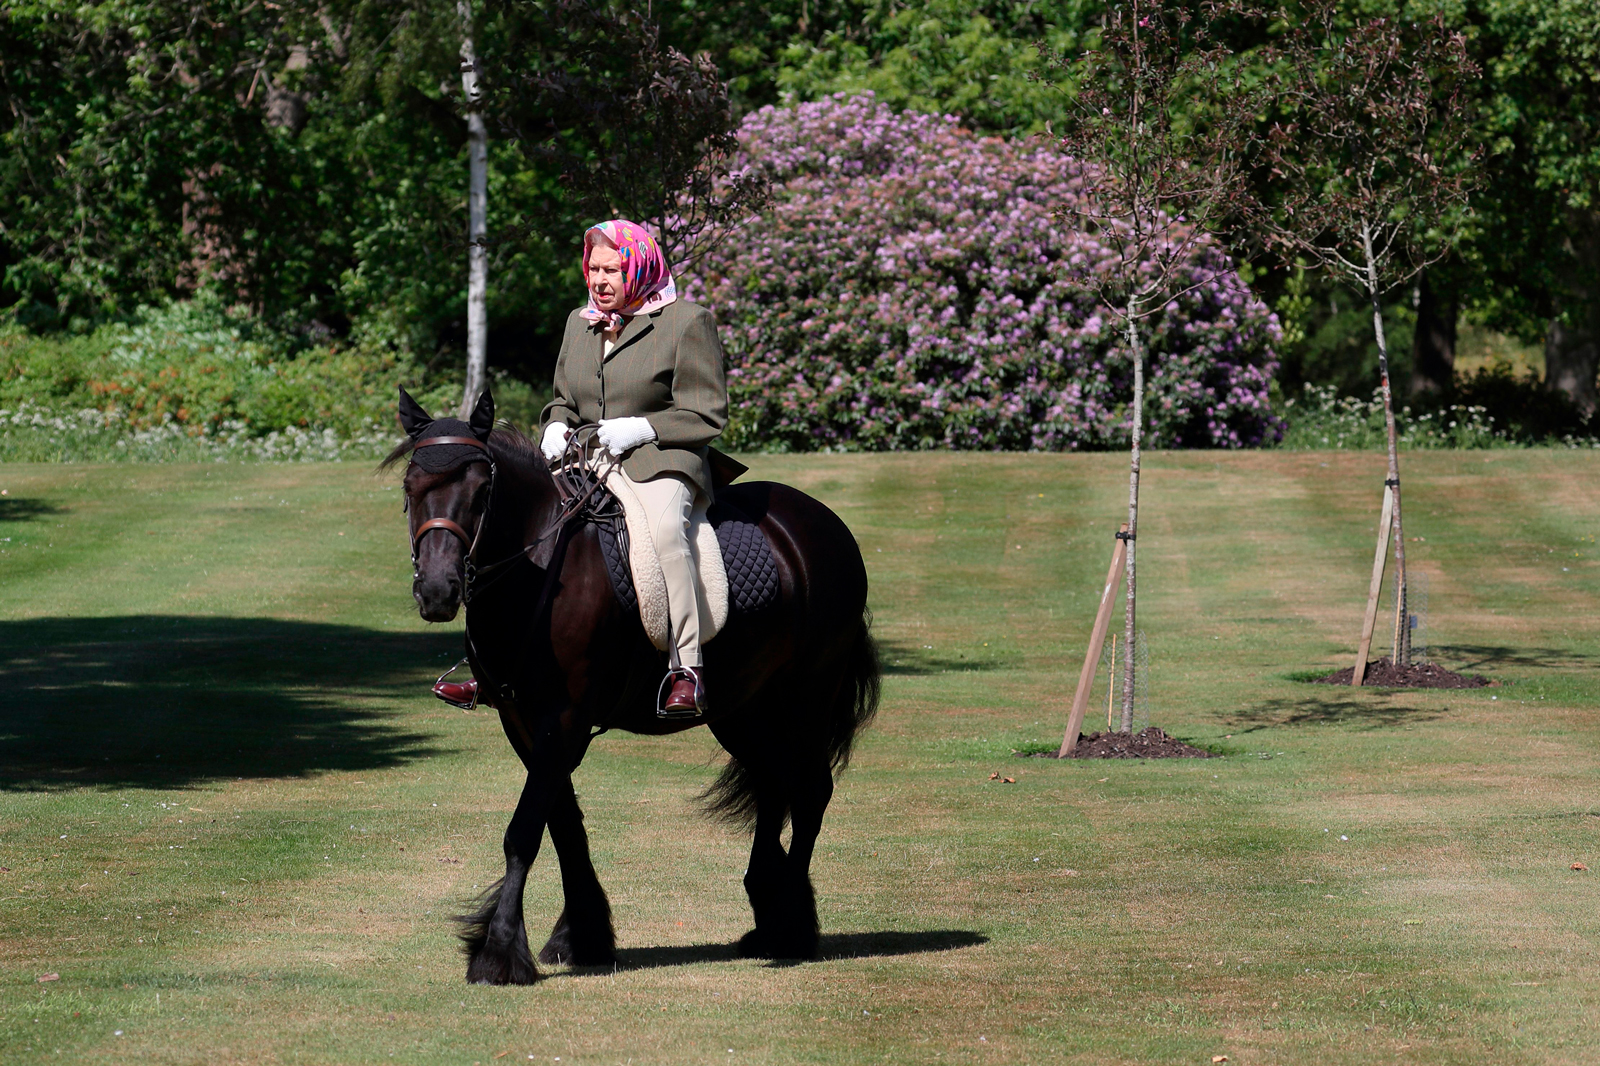 Britain's Queen Elizabeth II rides Balmoral Fern, a 14-year-old Fell Pony, in Windsor Home Park, west of London, over the weekend of May 30 and May 31.